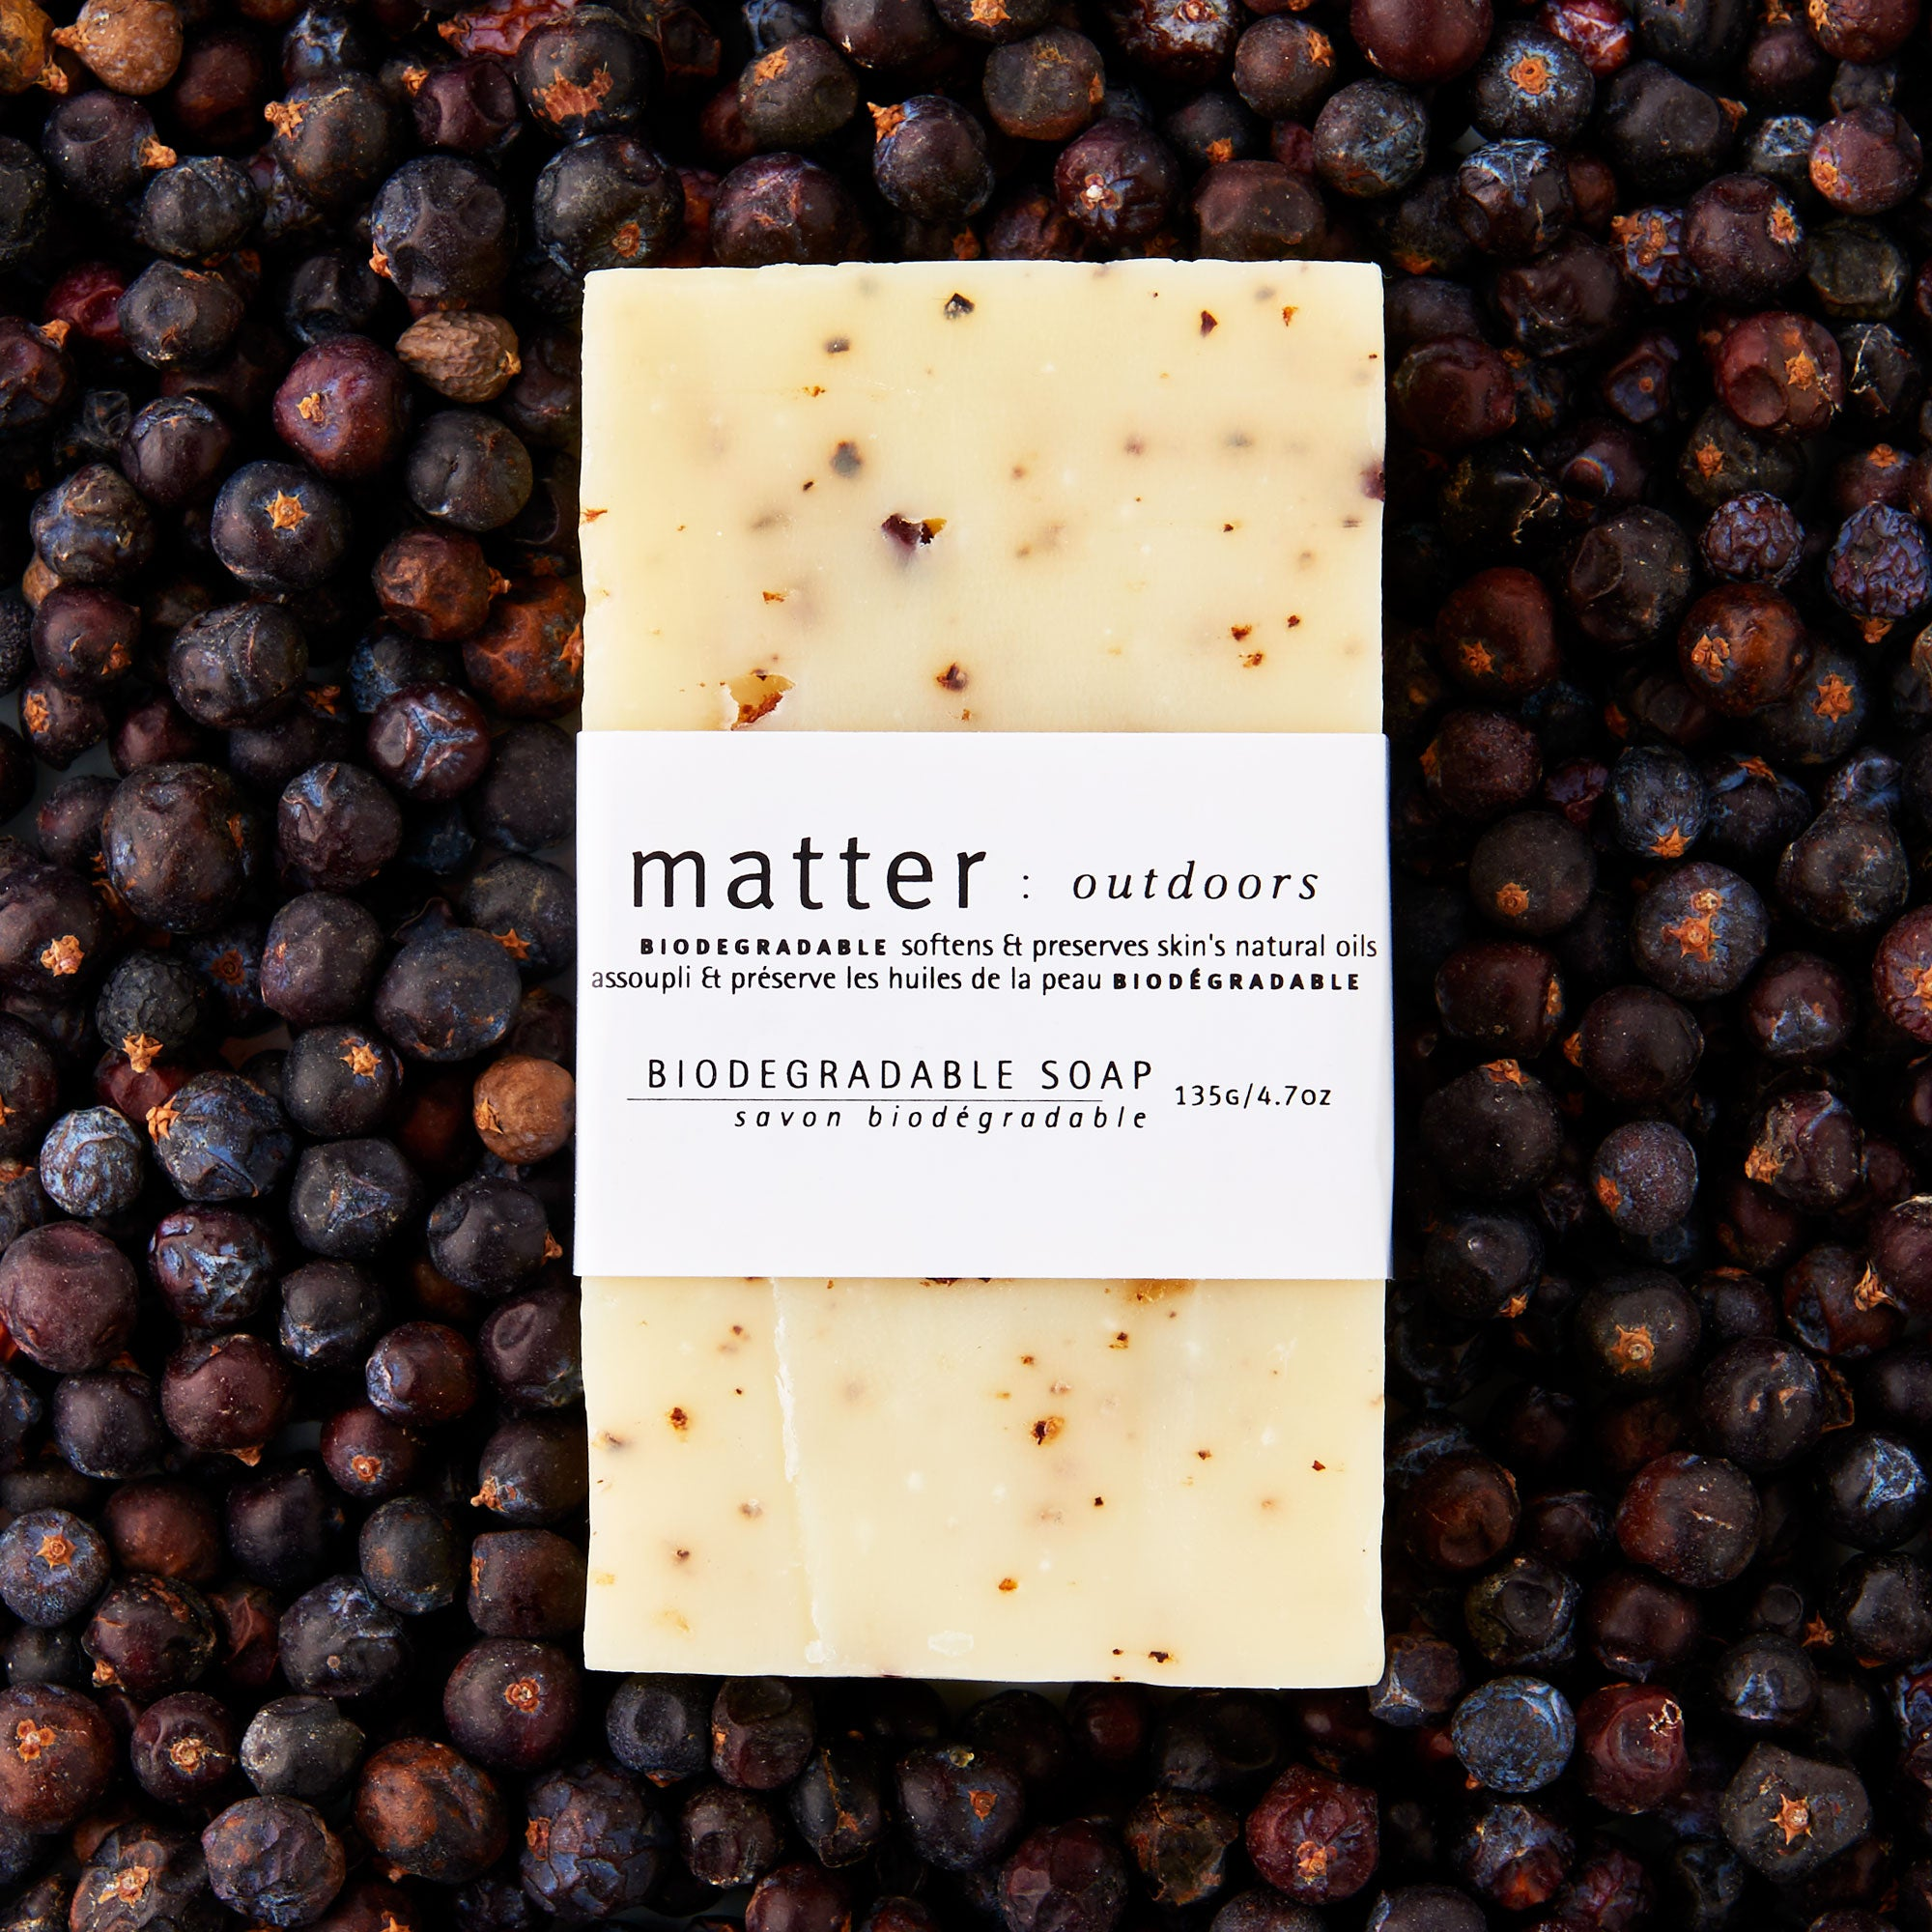 Biodegradable Soap by Matter: Outdoors